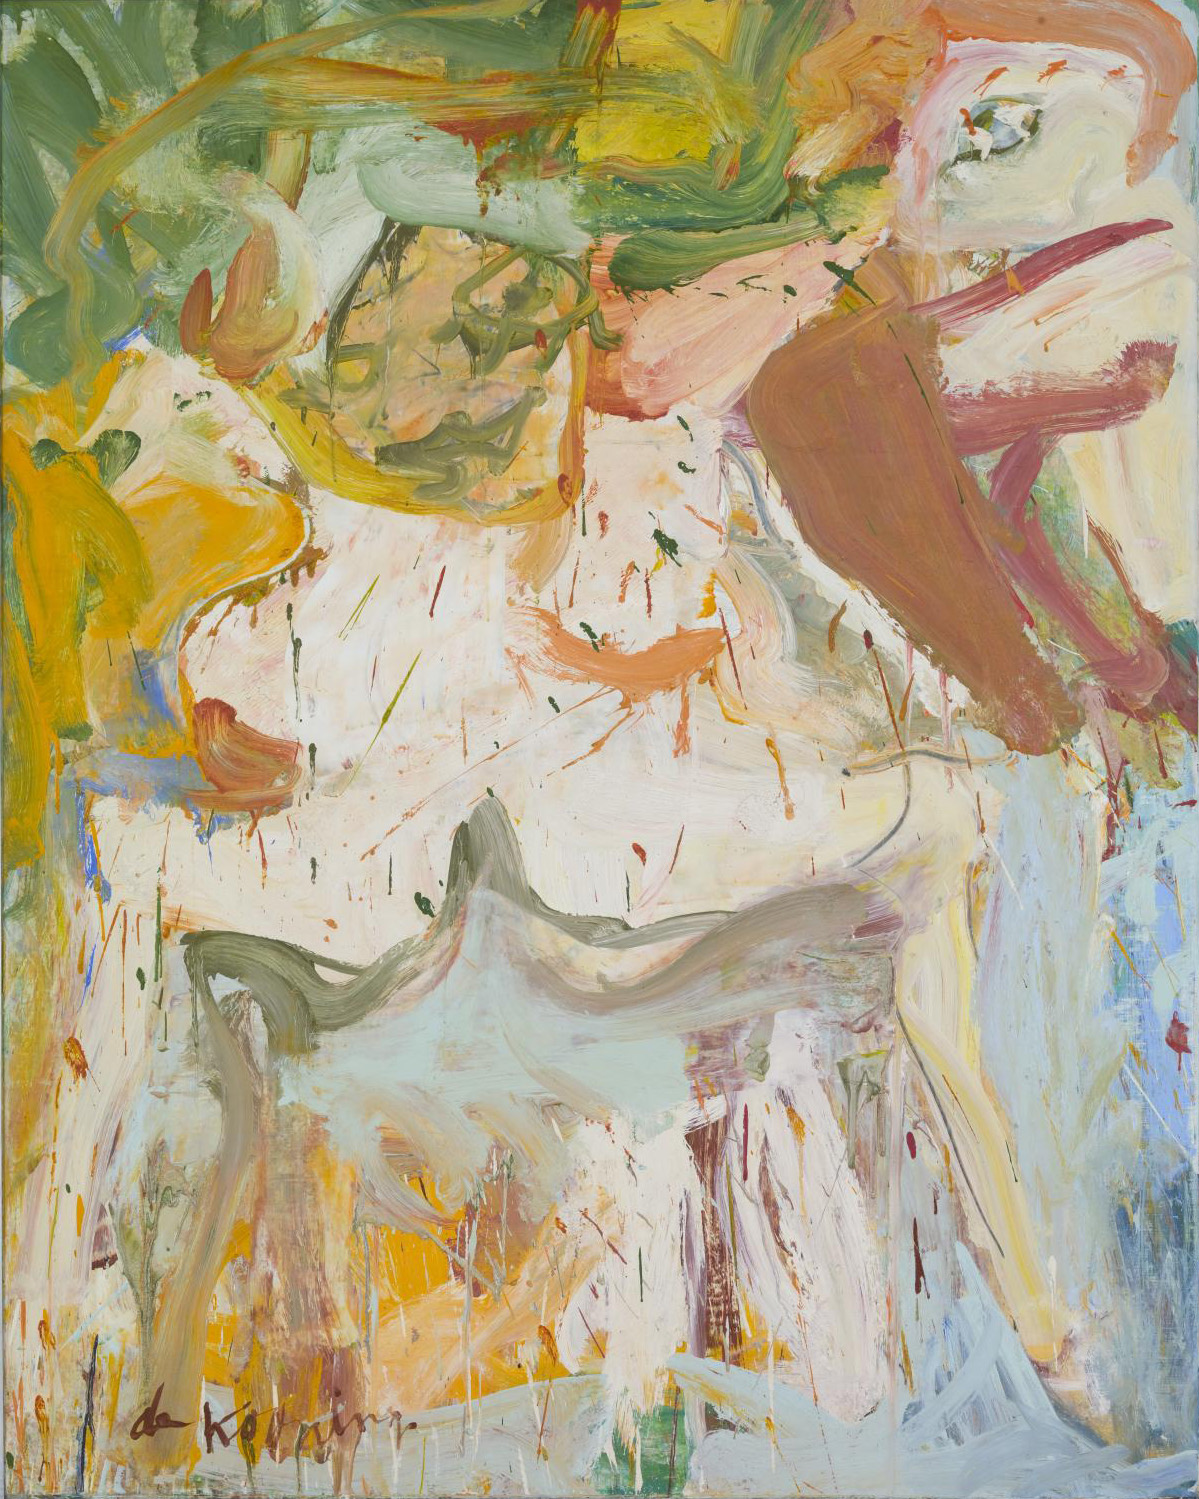 de kooning s embodied vision and abstract expressionism in the willem de kooning the 1966 7